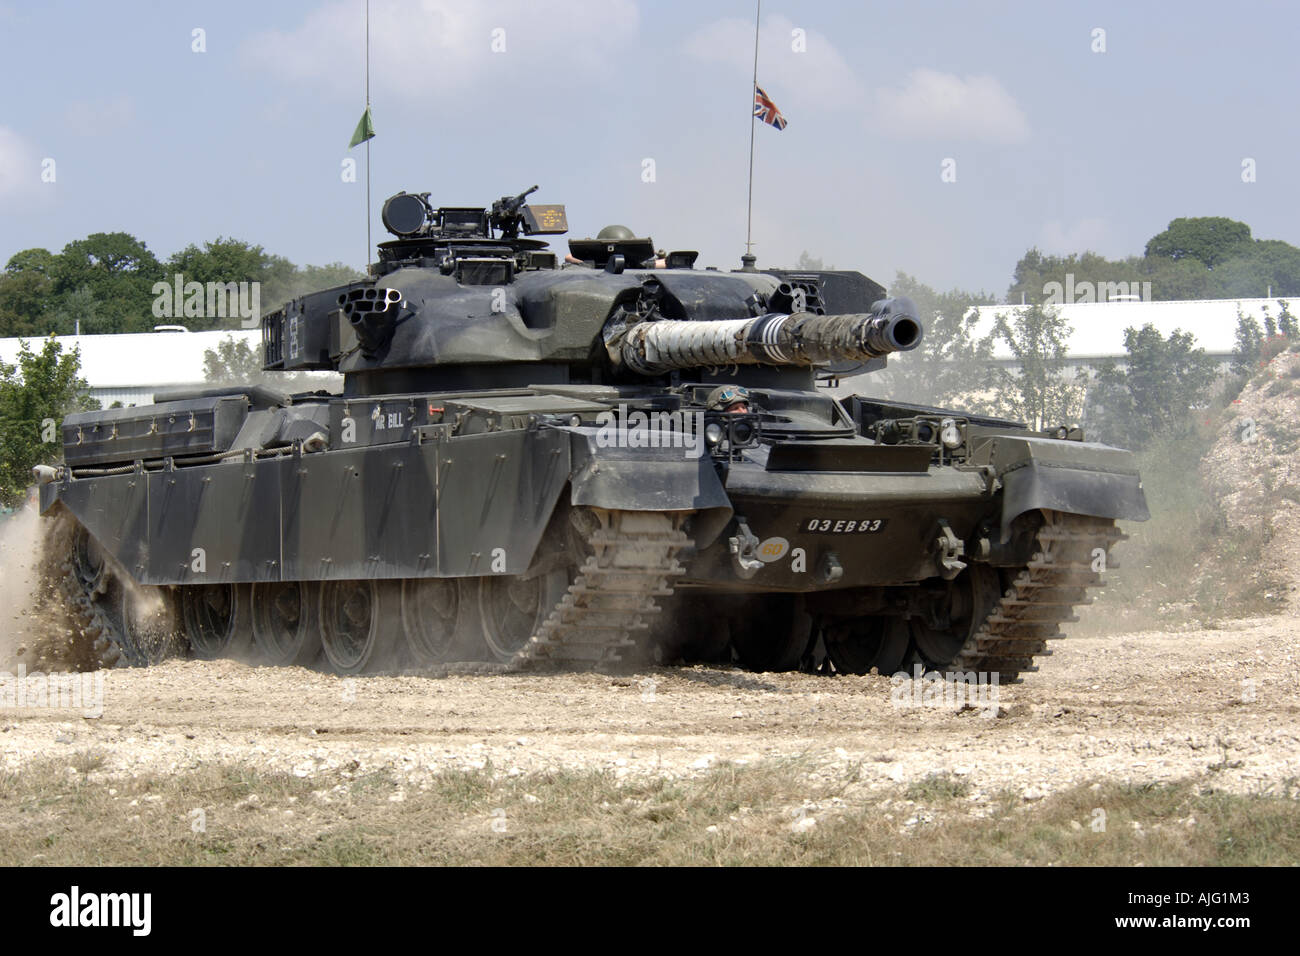 Modern day British Army Chieftain tank on manouvers in Europe - Stock Image